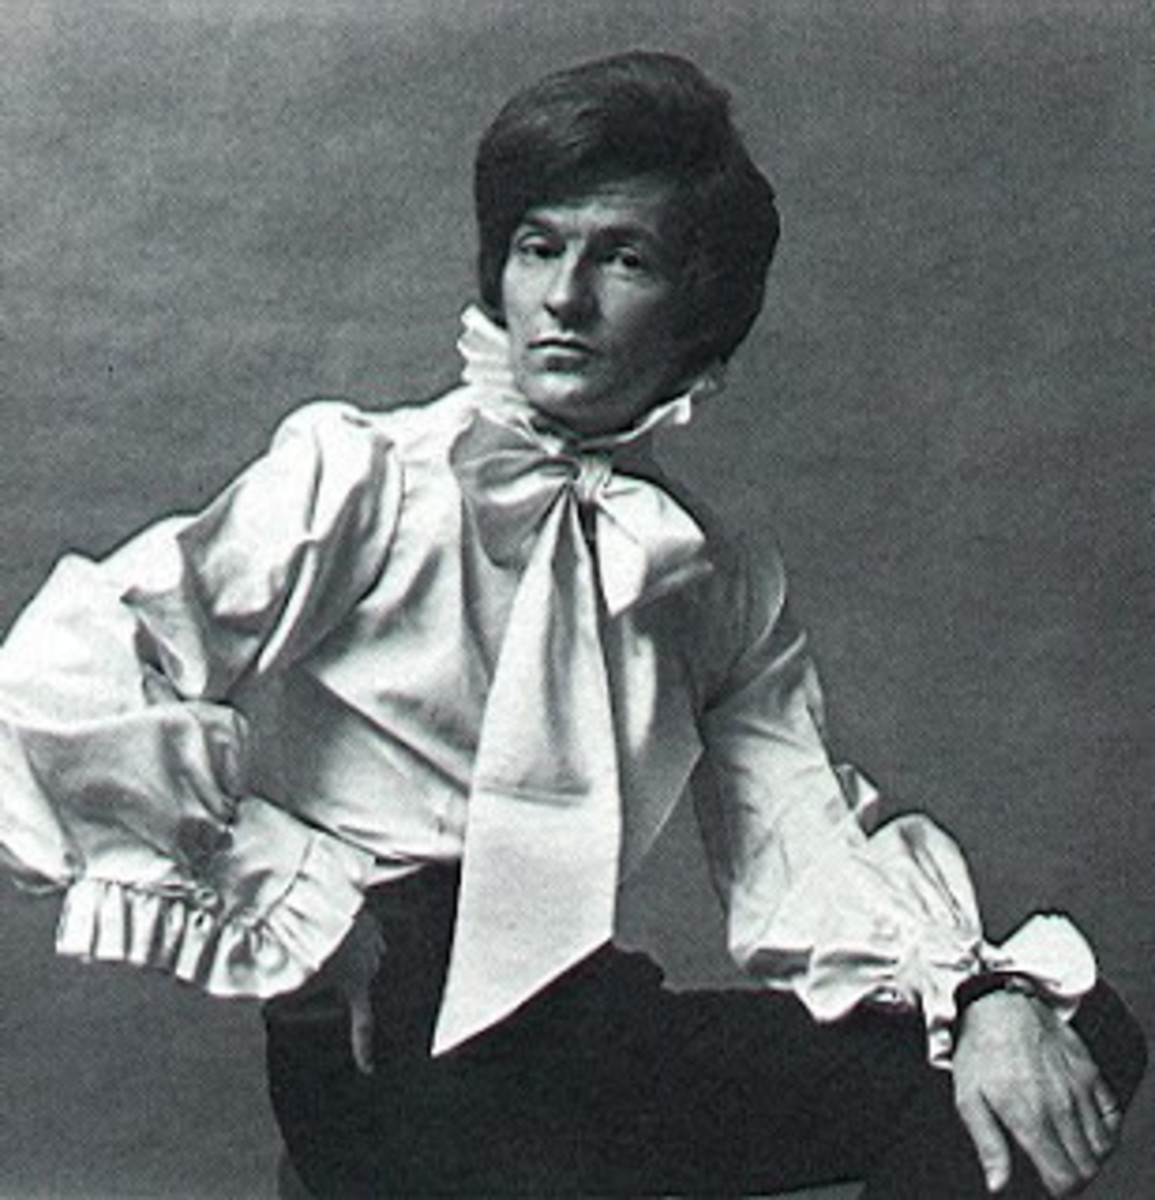 Patrick Lichfield was influential in the 'Peacock Revolution' a fashion style for men 1963 to 1973